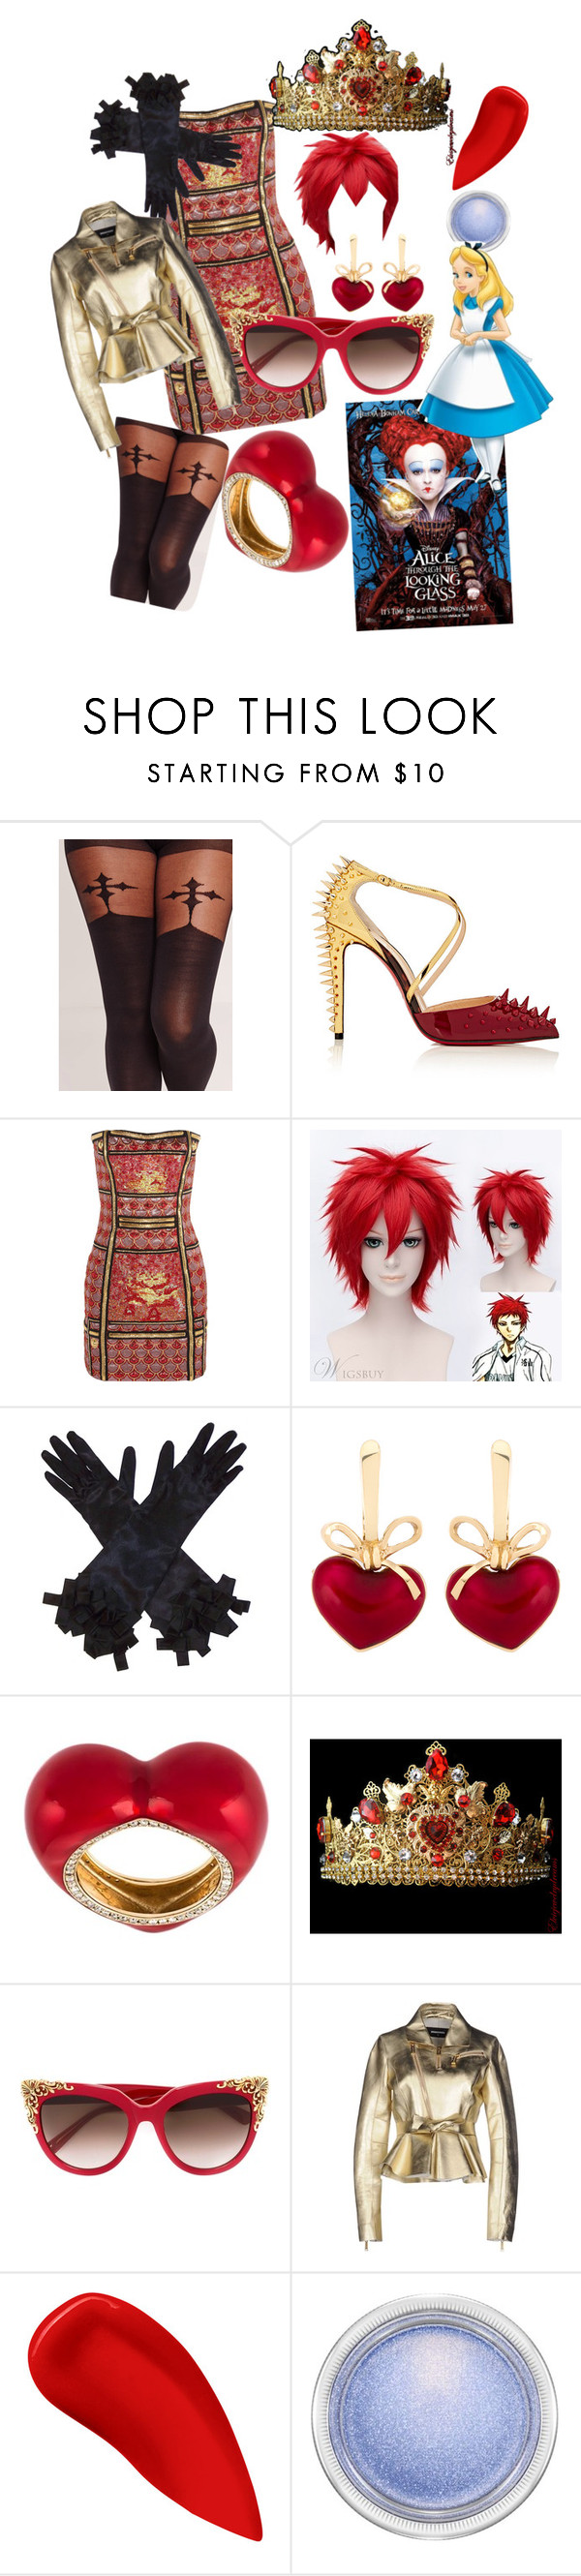 """""""Off With Her Head!"""" by ahapplet ❤ liked on Polyvore featuring Missguided, Christian Louboutin, Balmain, KDIA, Alison Lou, MCM, Dsquared2, Lipstick Queen, MAC Cosmetics and contestentry"""